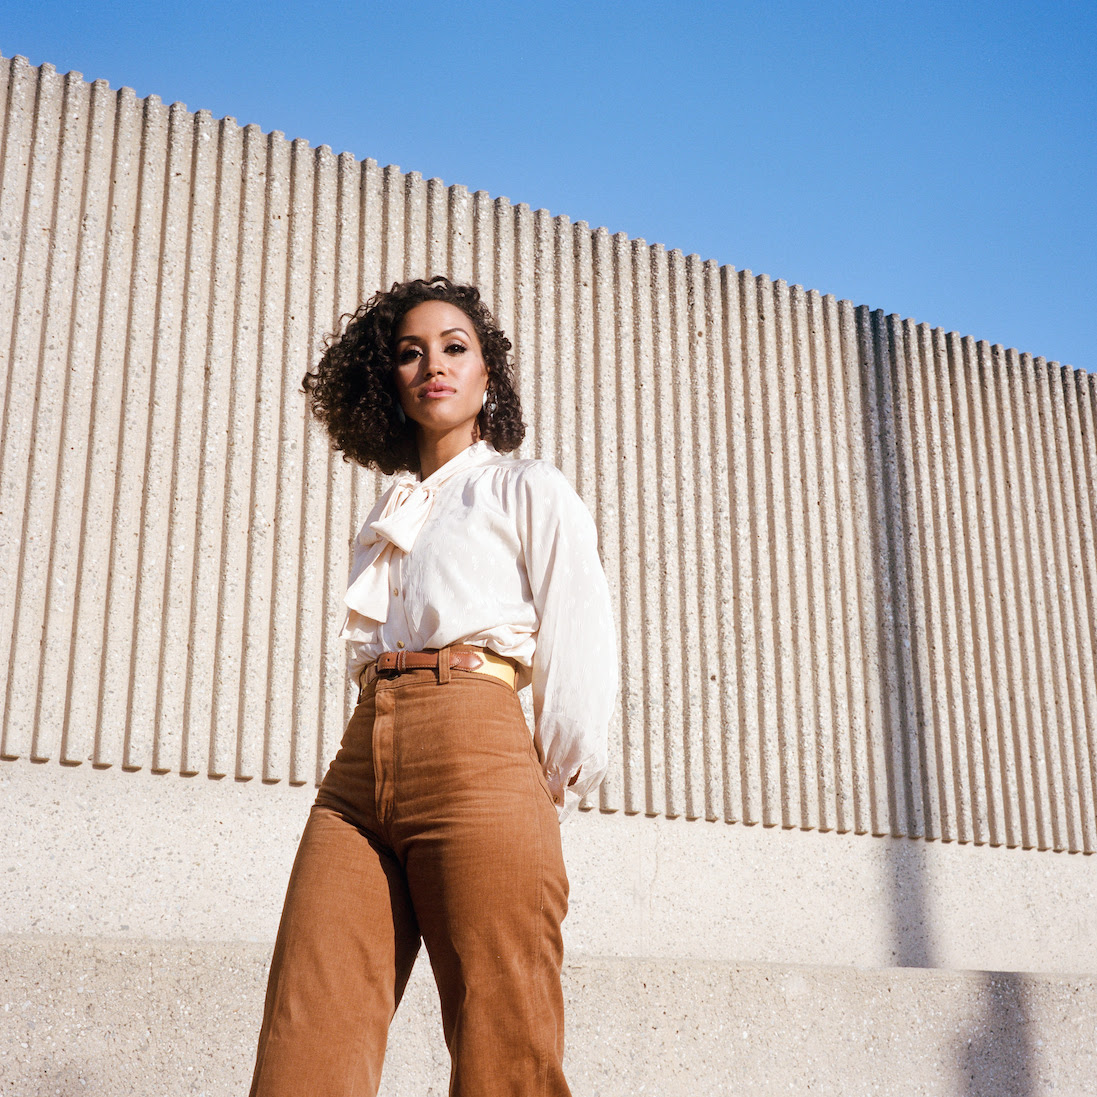 Kadhja Bonet announces her new album 'The Visitor', out on October 21, via Fat Possum/Fresh Selects